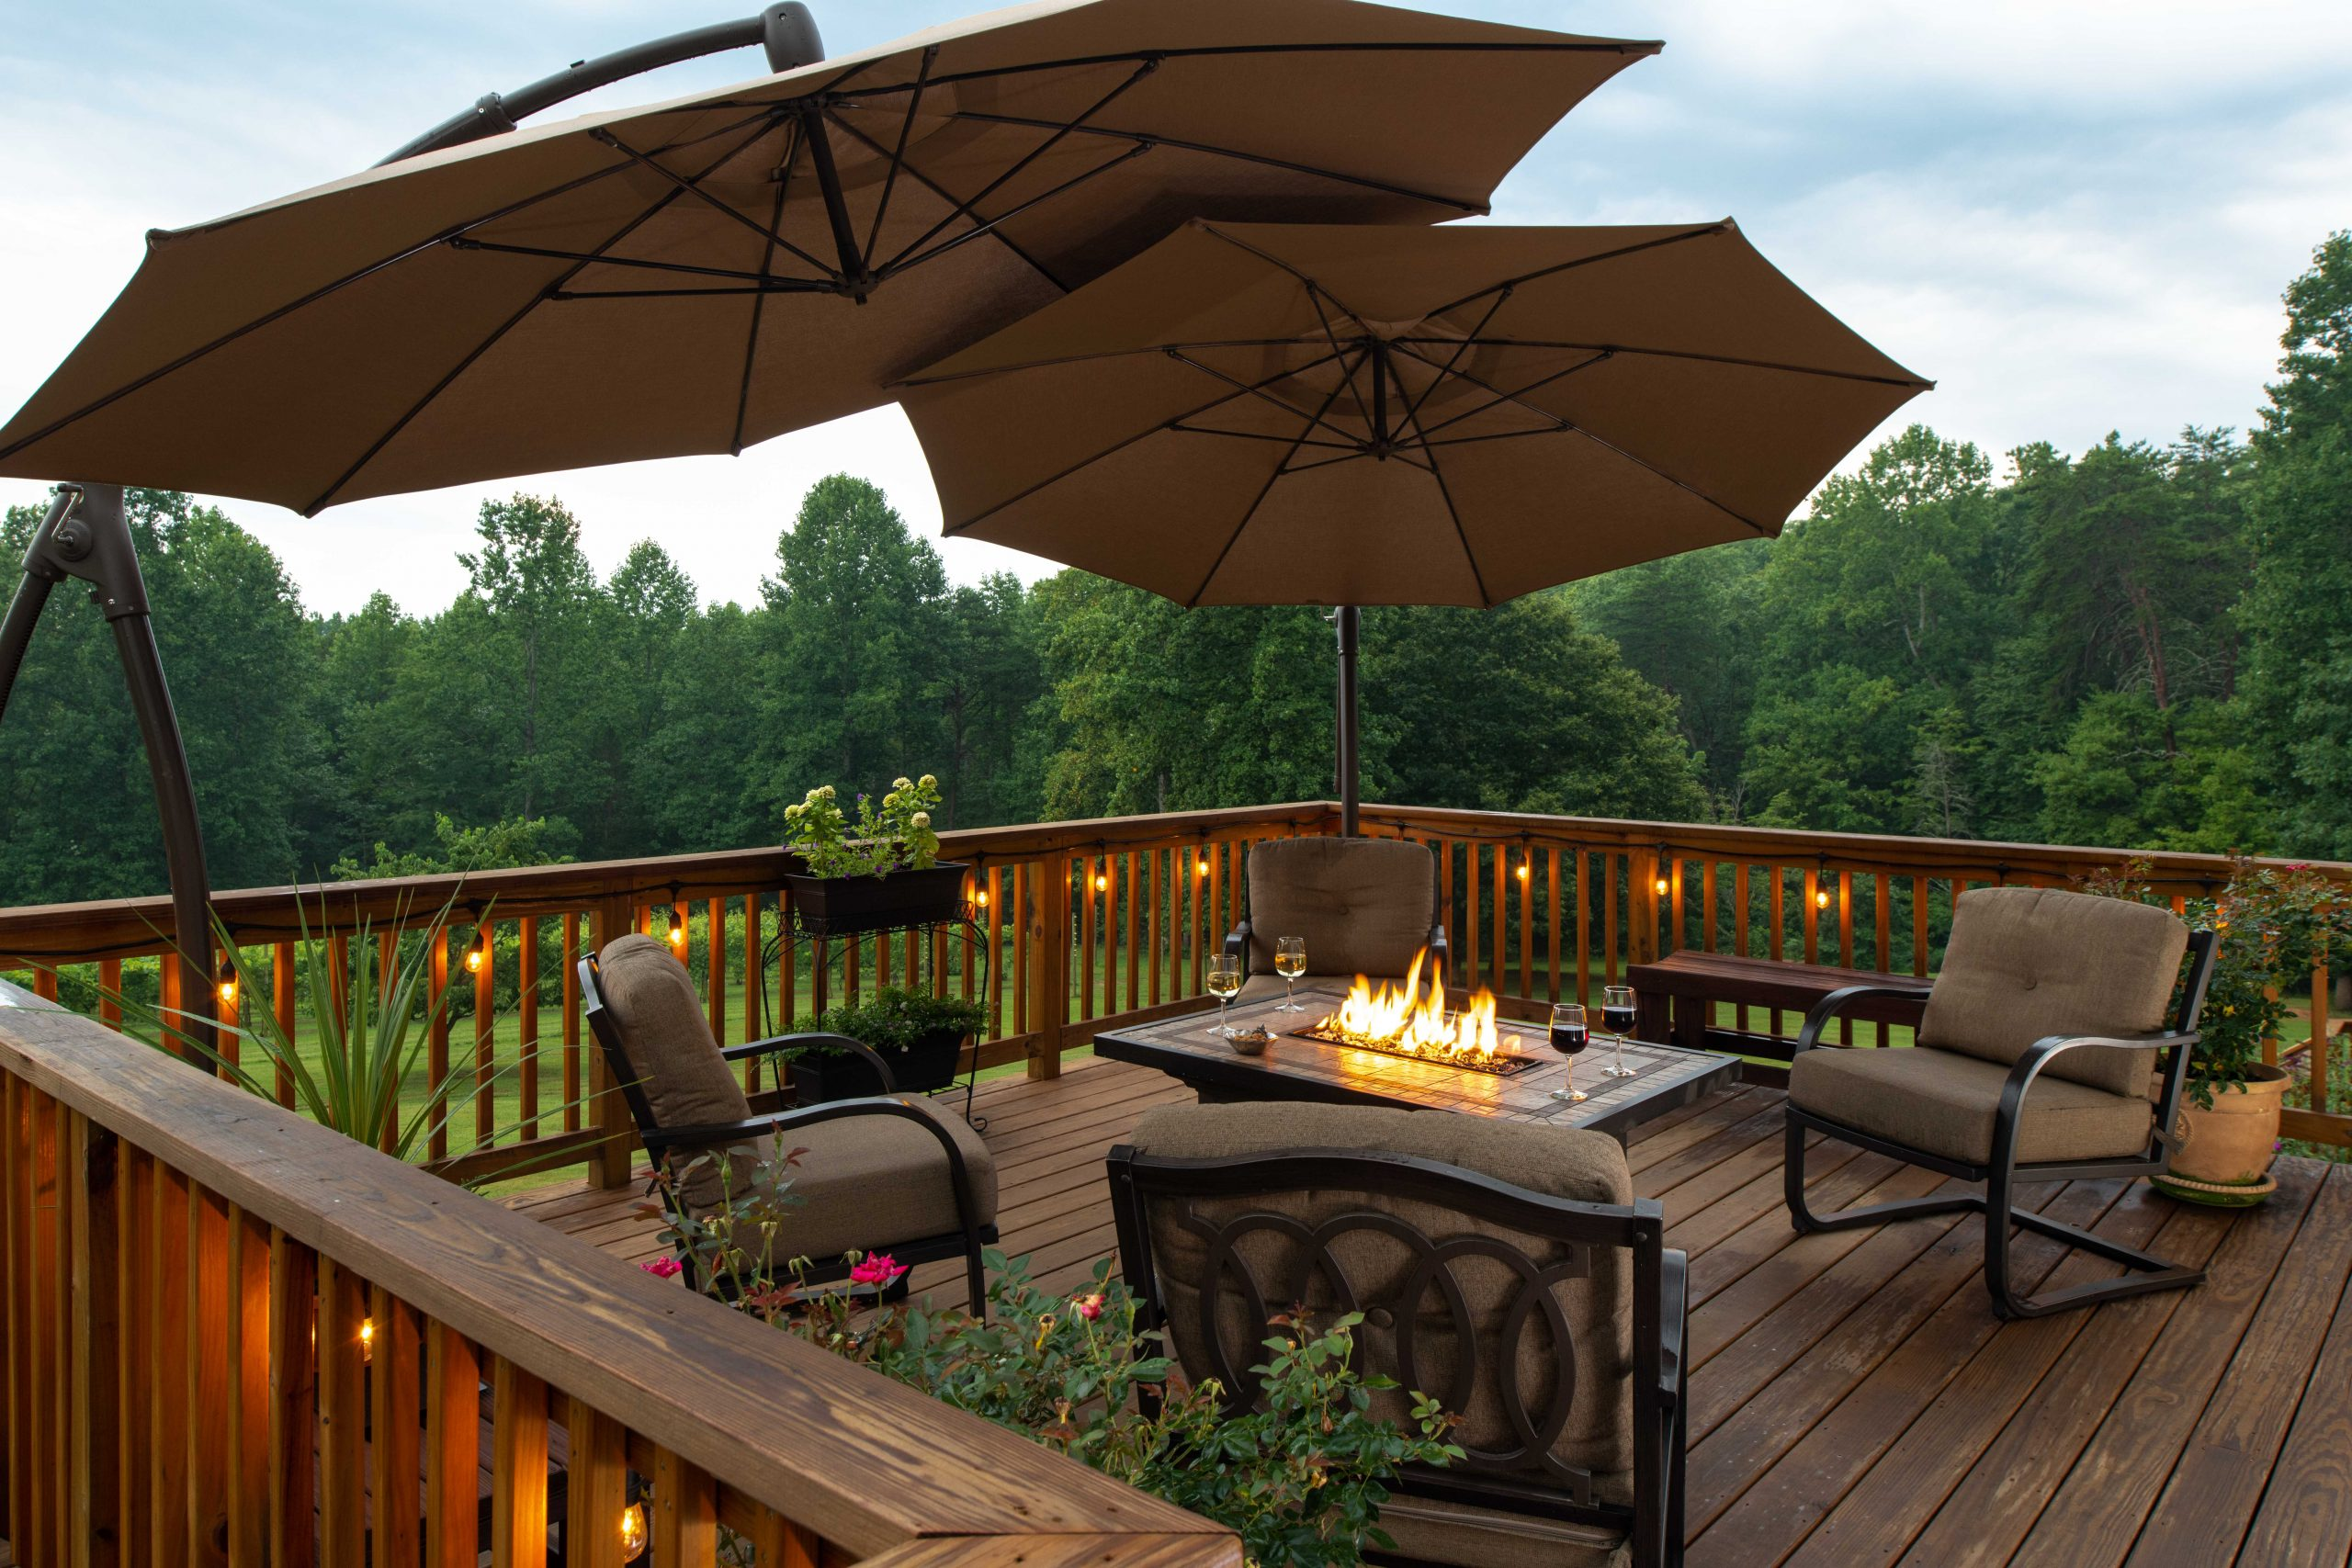 Arcady's main back deck, spacious with cushioned patio furniture and umbrellas and a warm glowing firepit.jpg